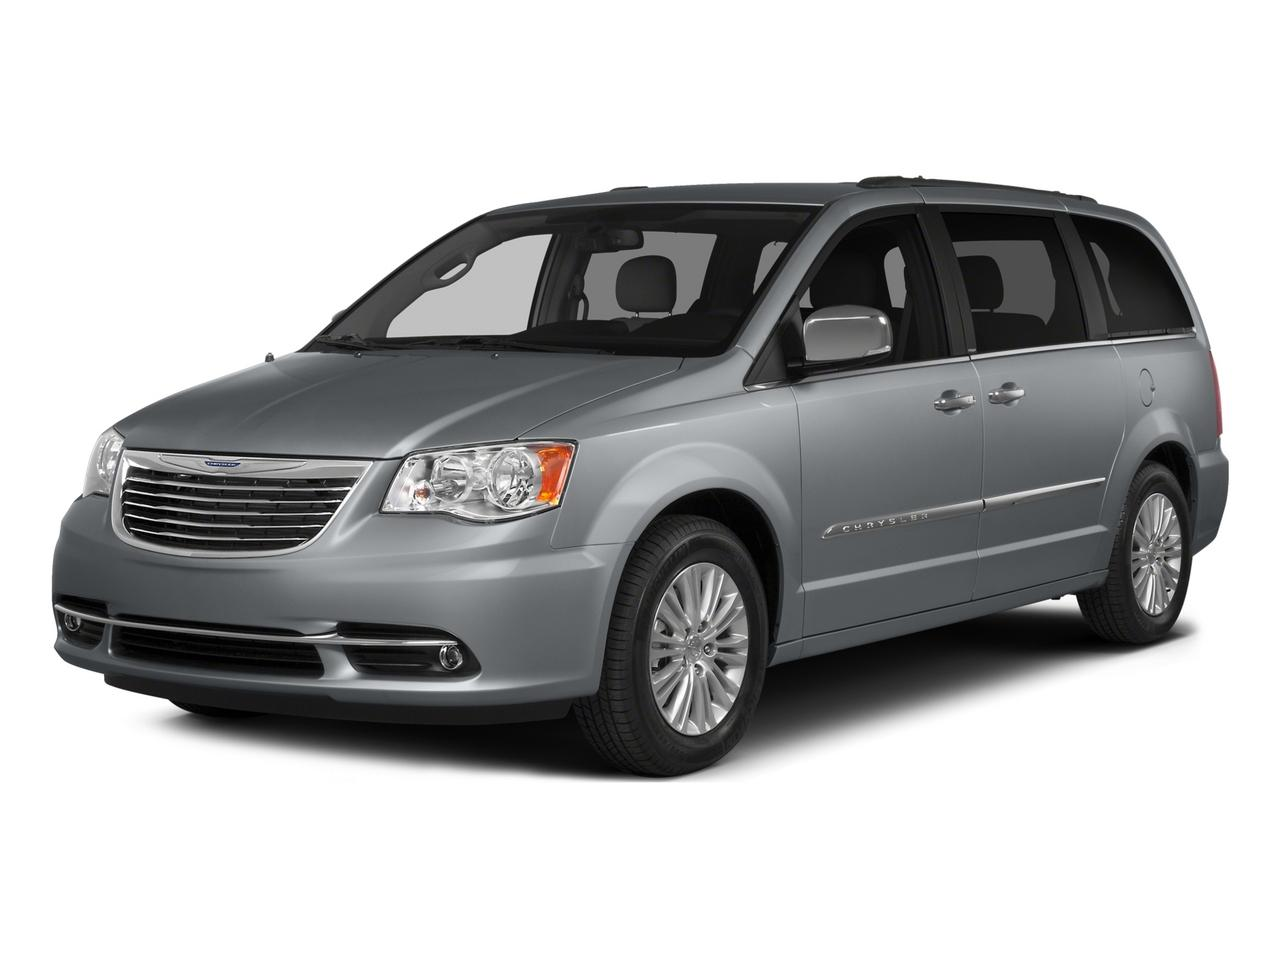 2015 Chrysler Town & Country Vehicle Photo in Novato, CA 94945